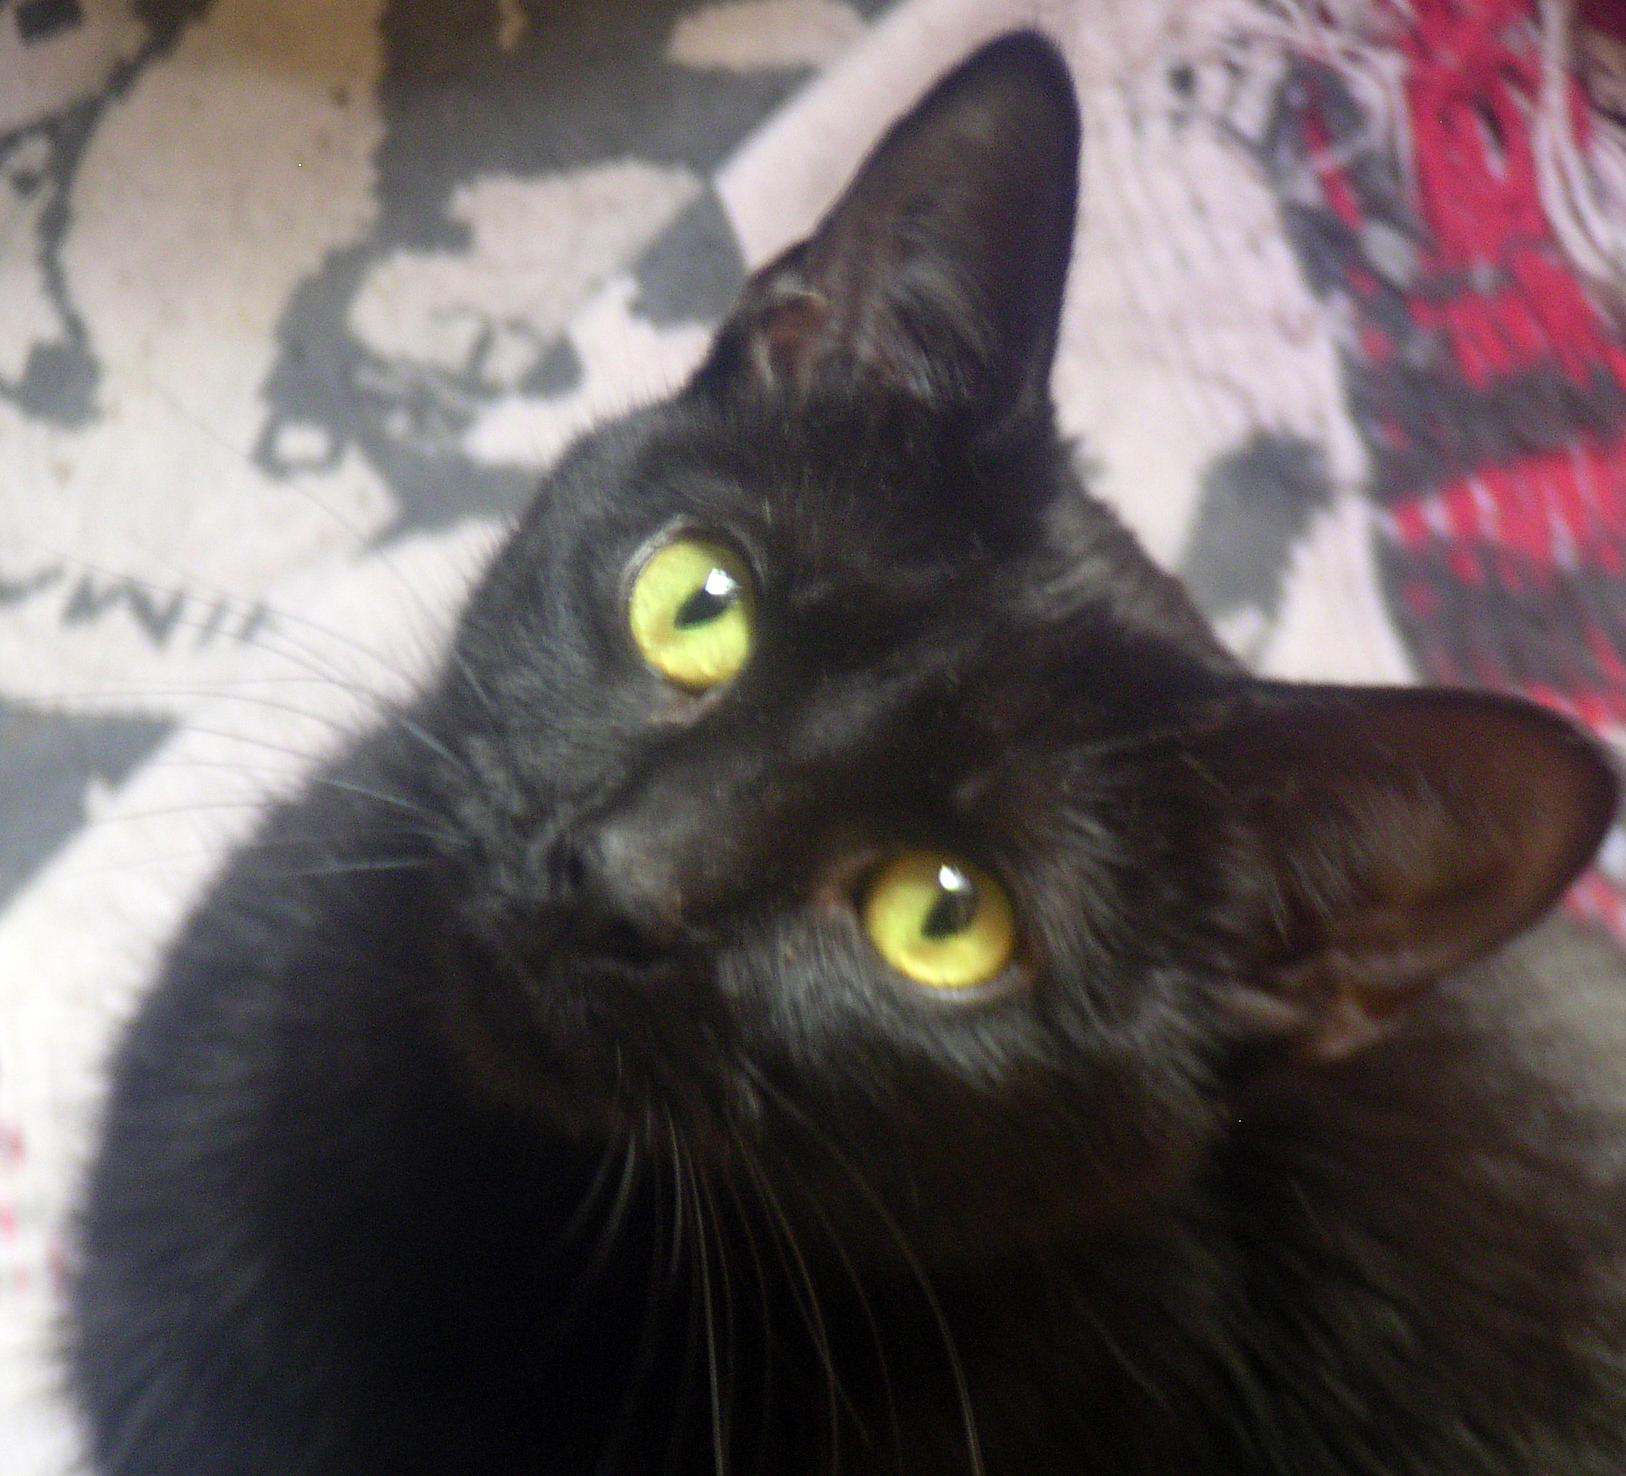 photo of black cat on patterned rug